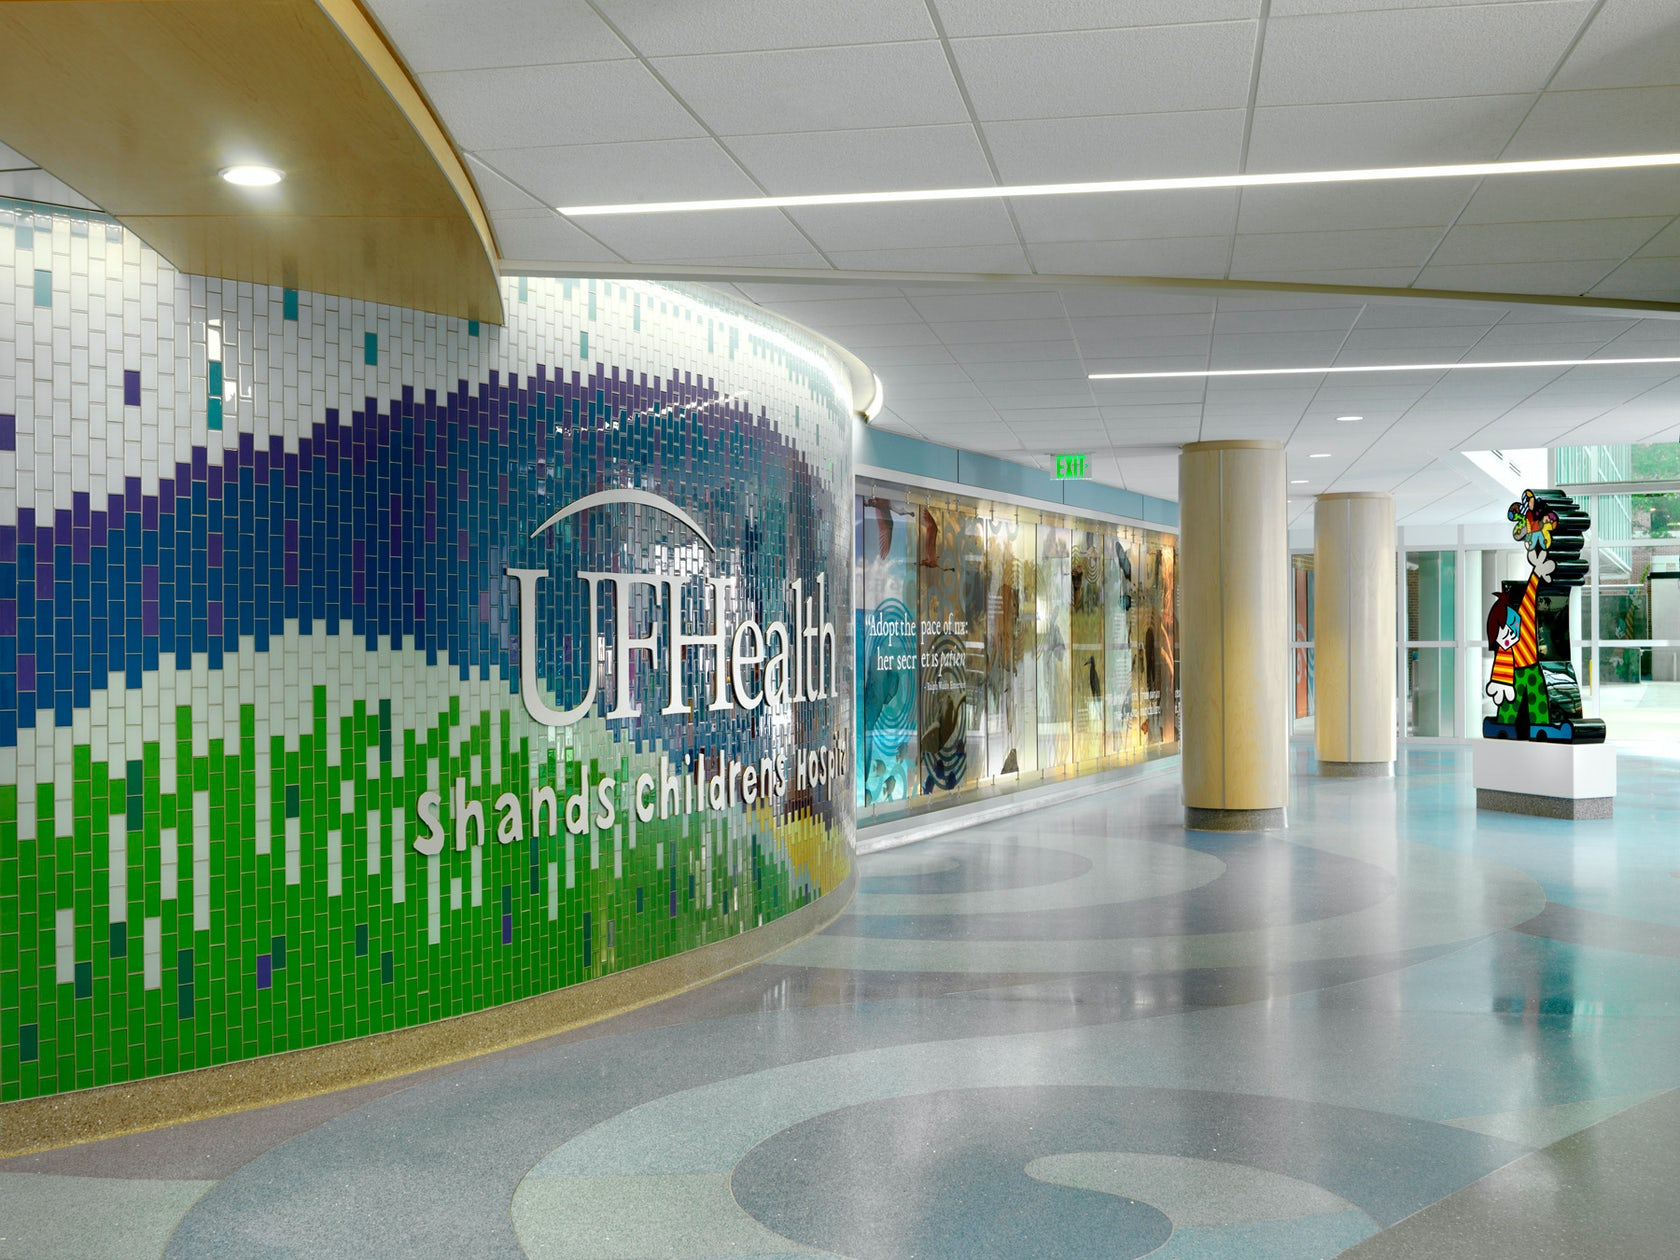 Uf Health Shands Children S Hospital East Entry Renovation